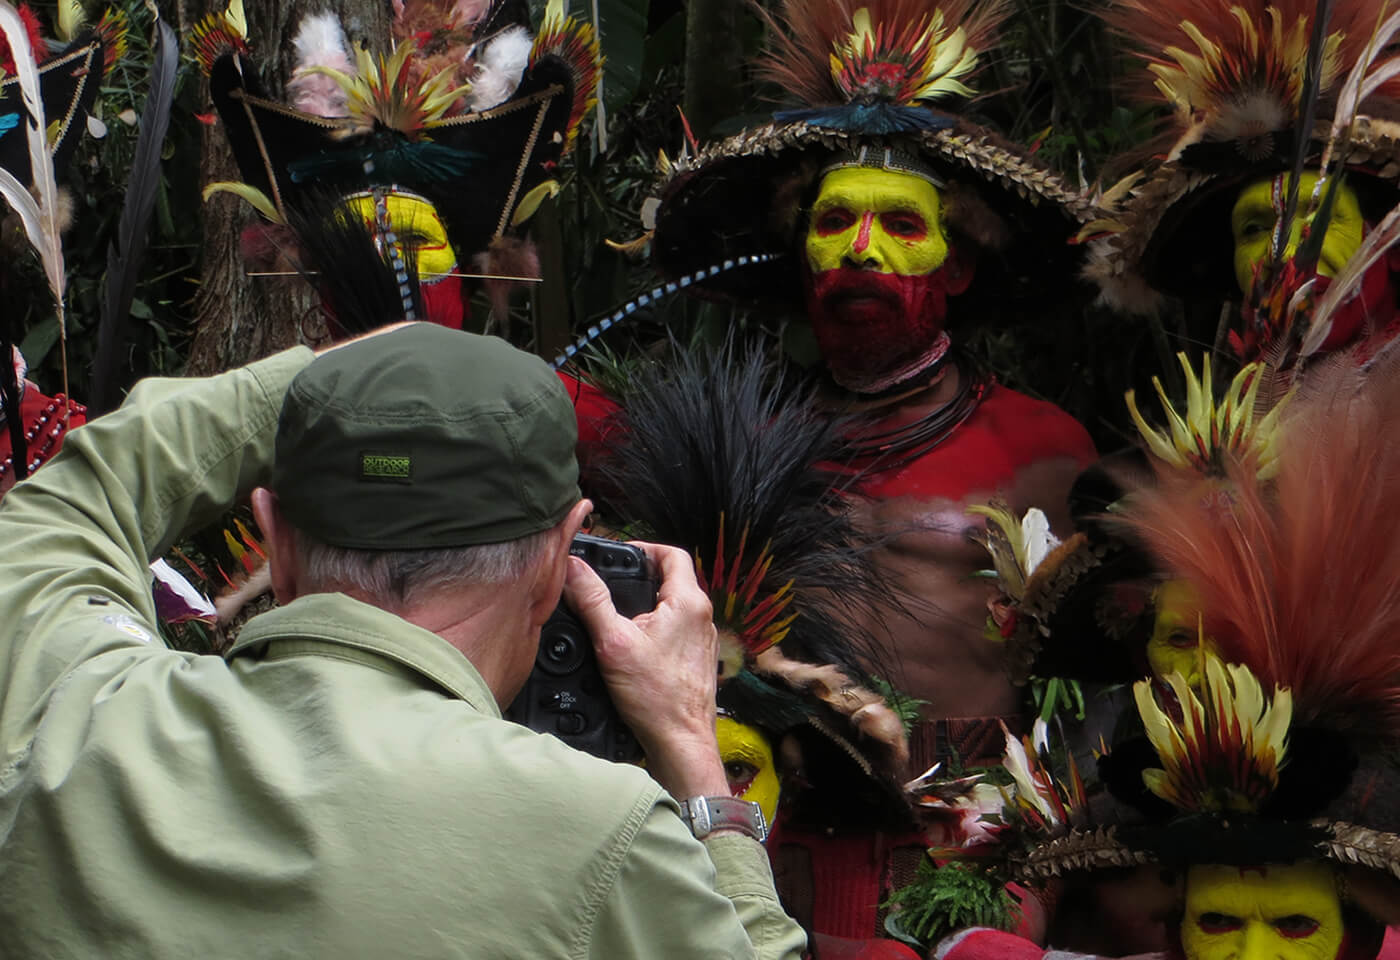 photographing the huli clan